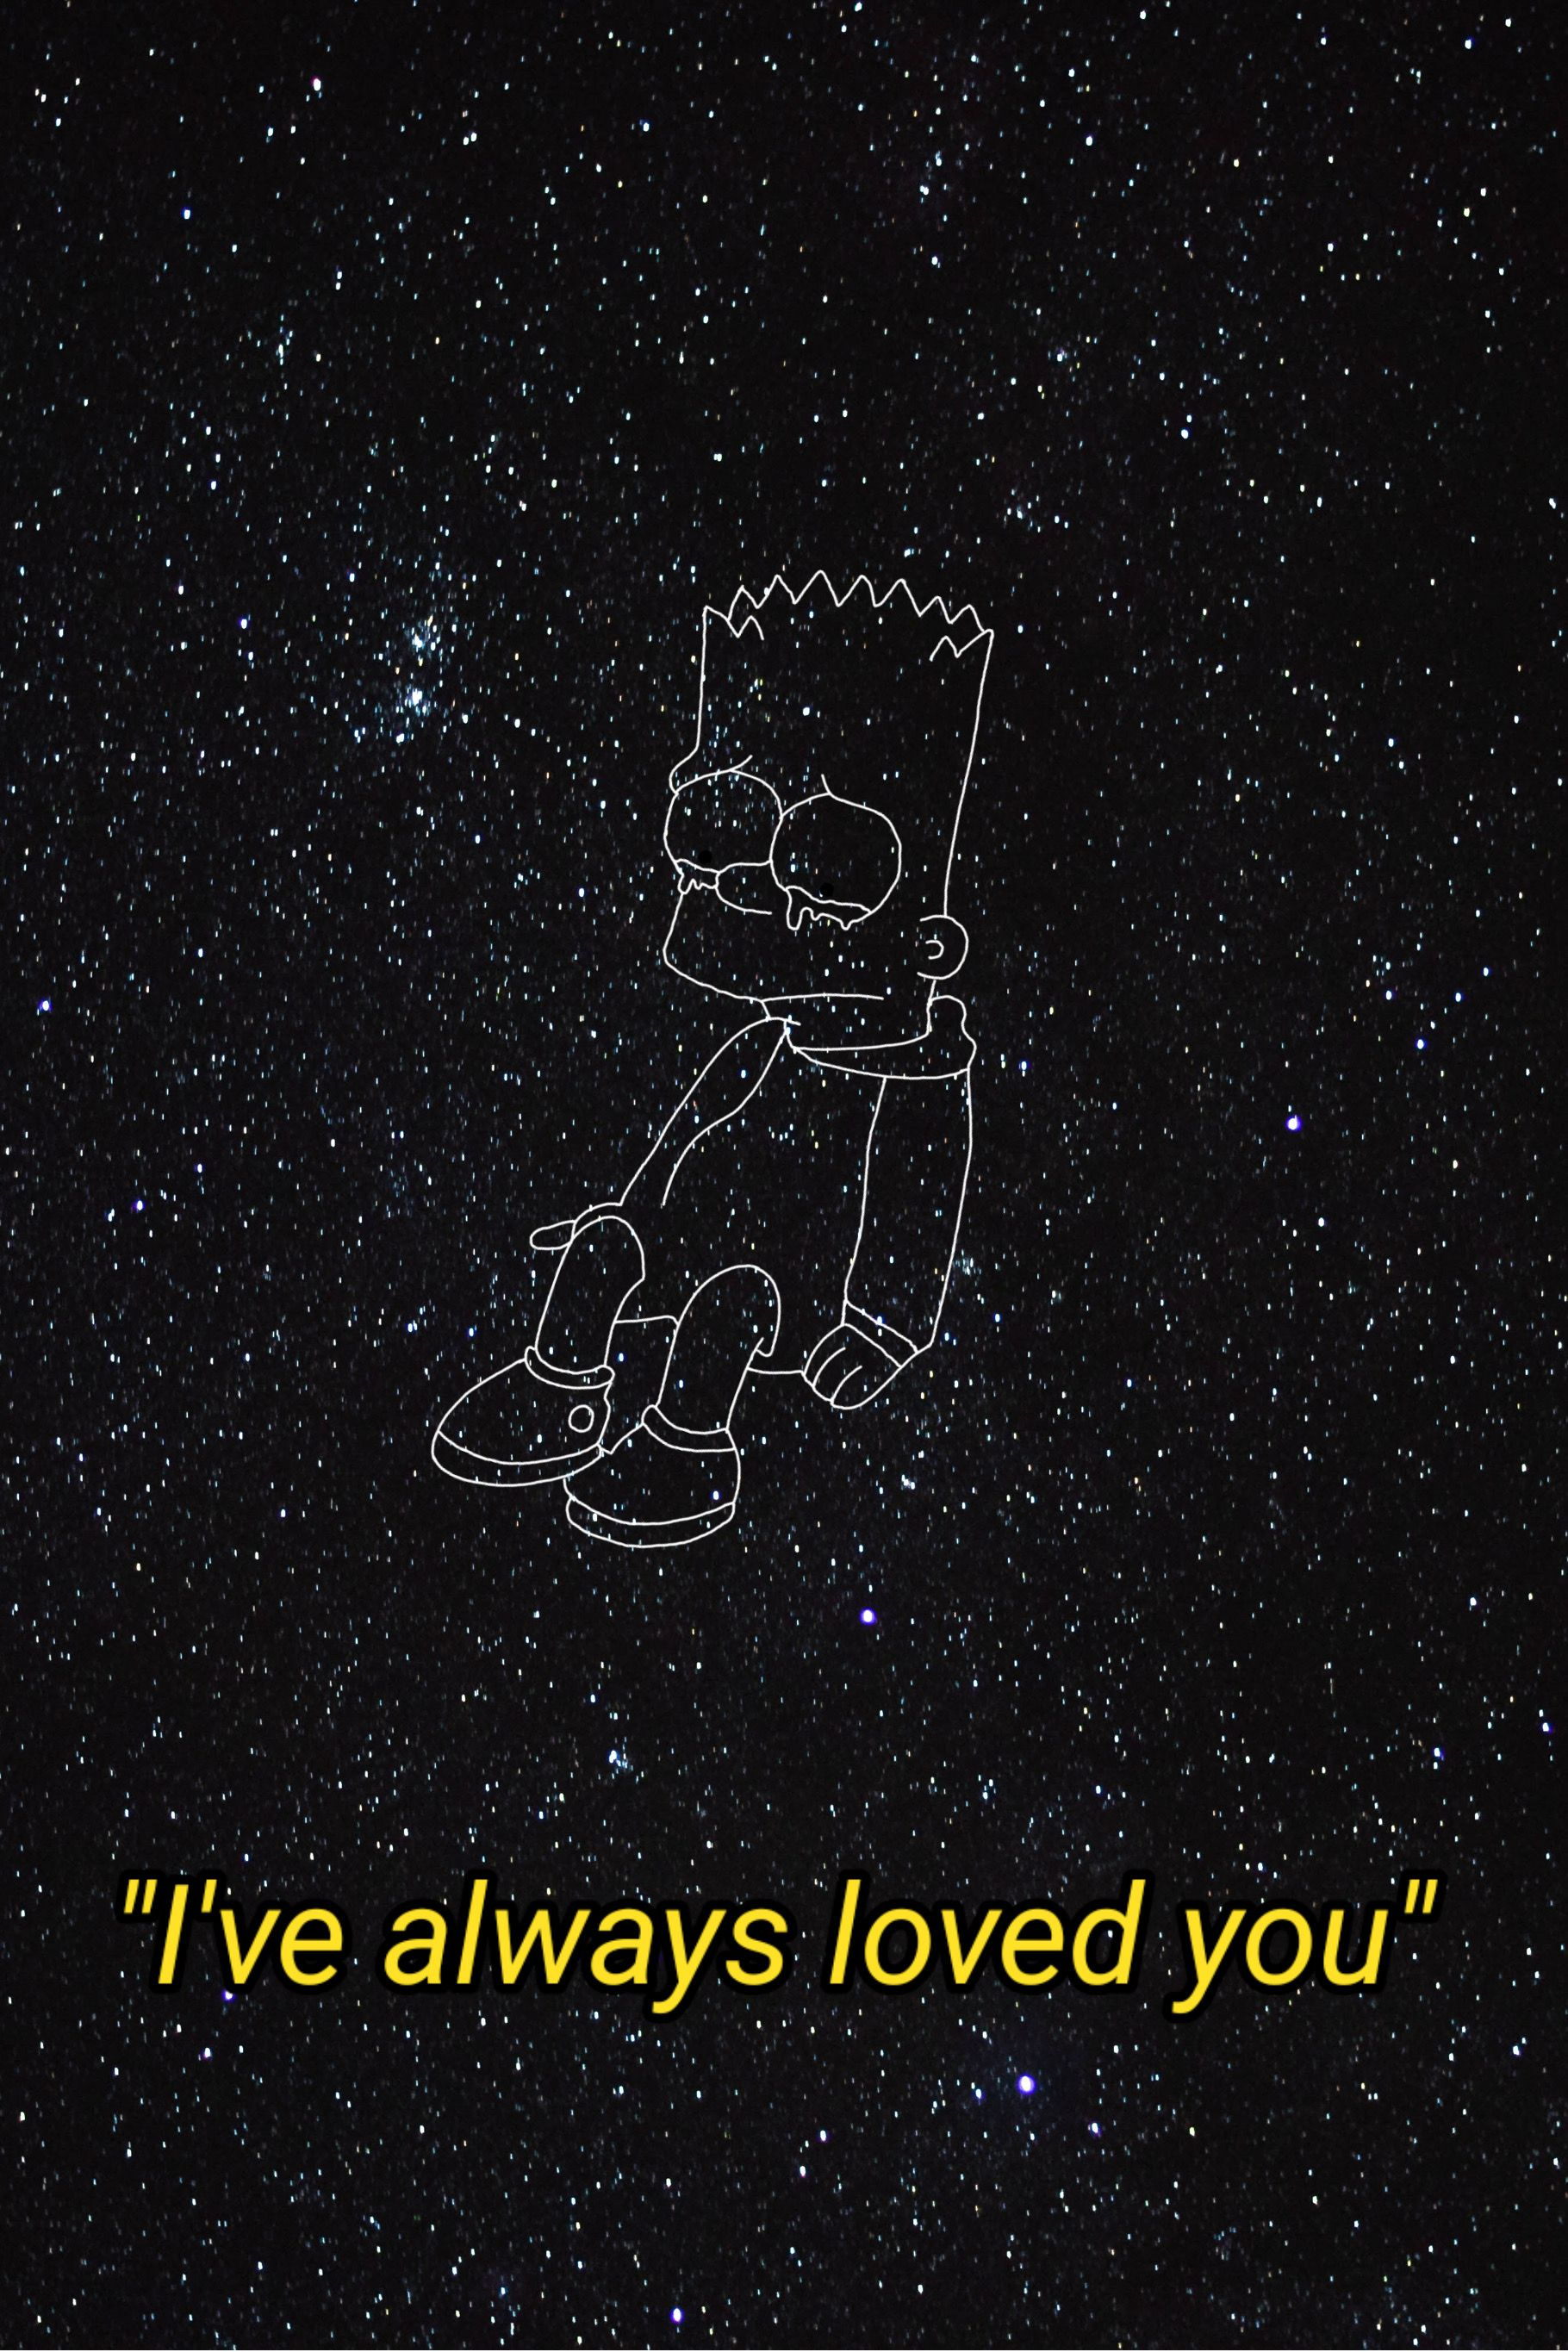 See all positive reviews aug 11, 2021. Sad Aesthetic Pictures Simpsons Wallpapers - Wallpaper Cave